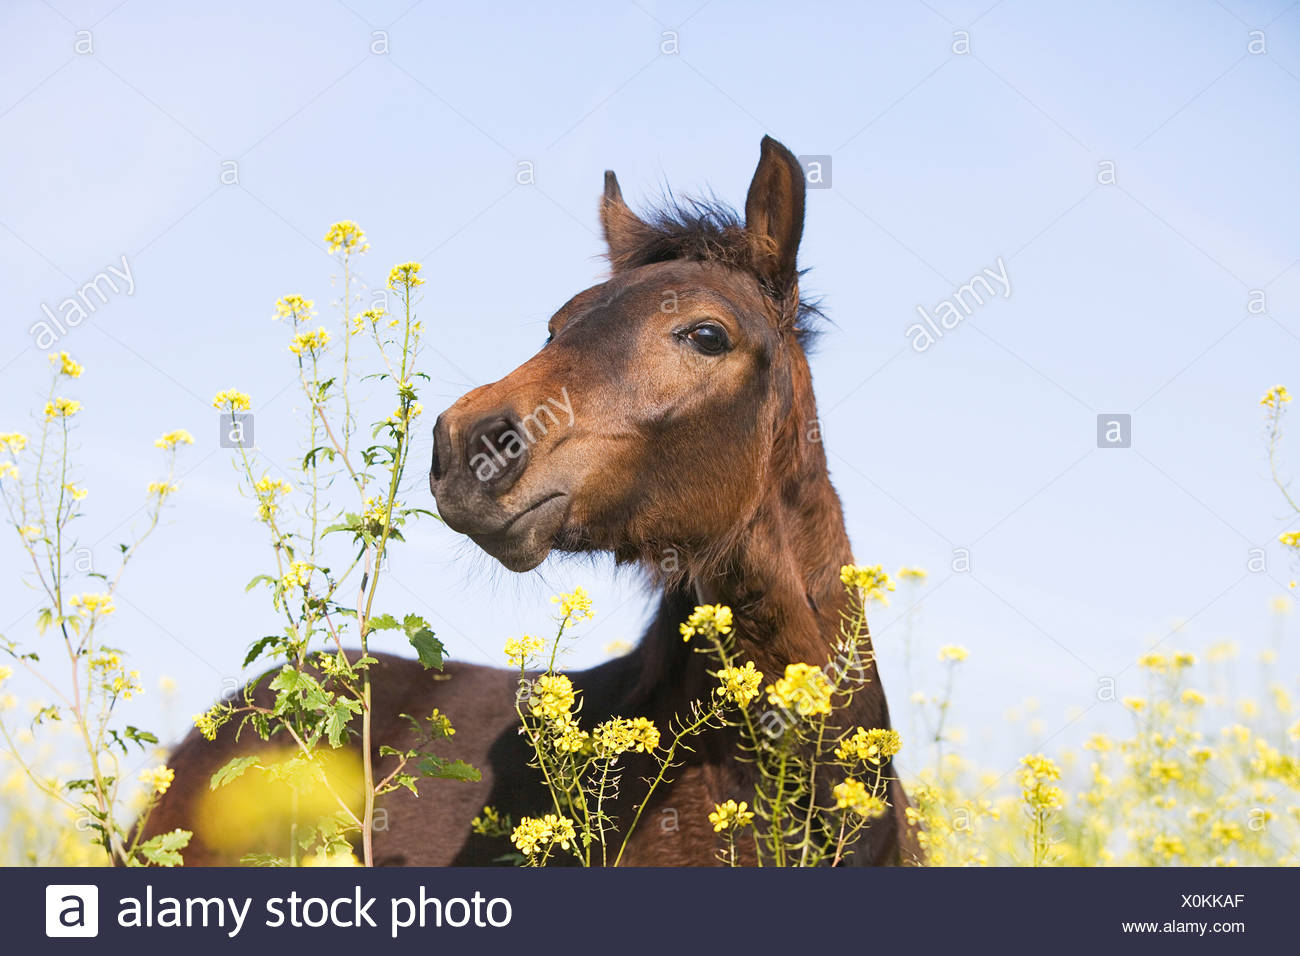 portrait of brown horse on flower meadow Stock Photo